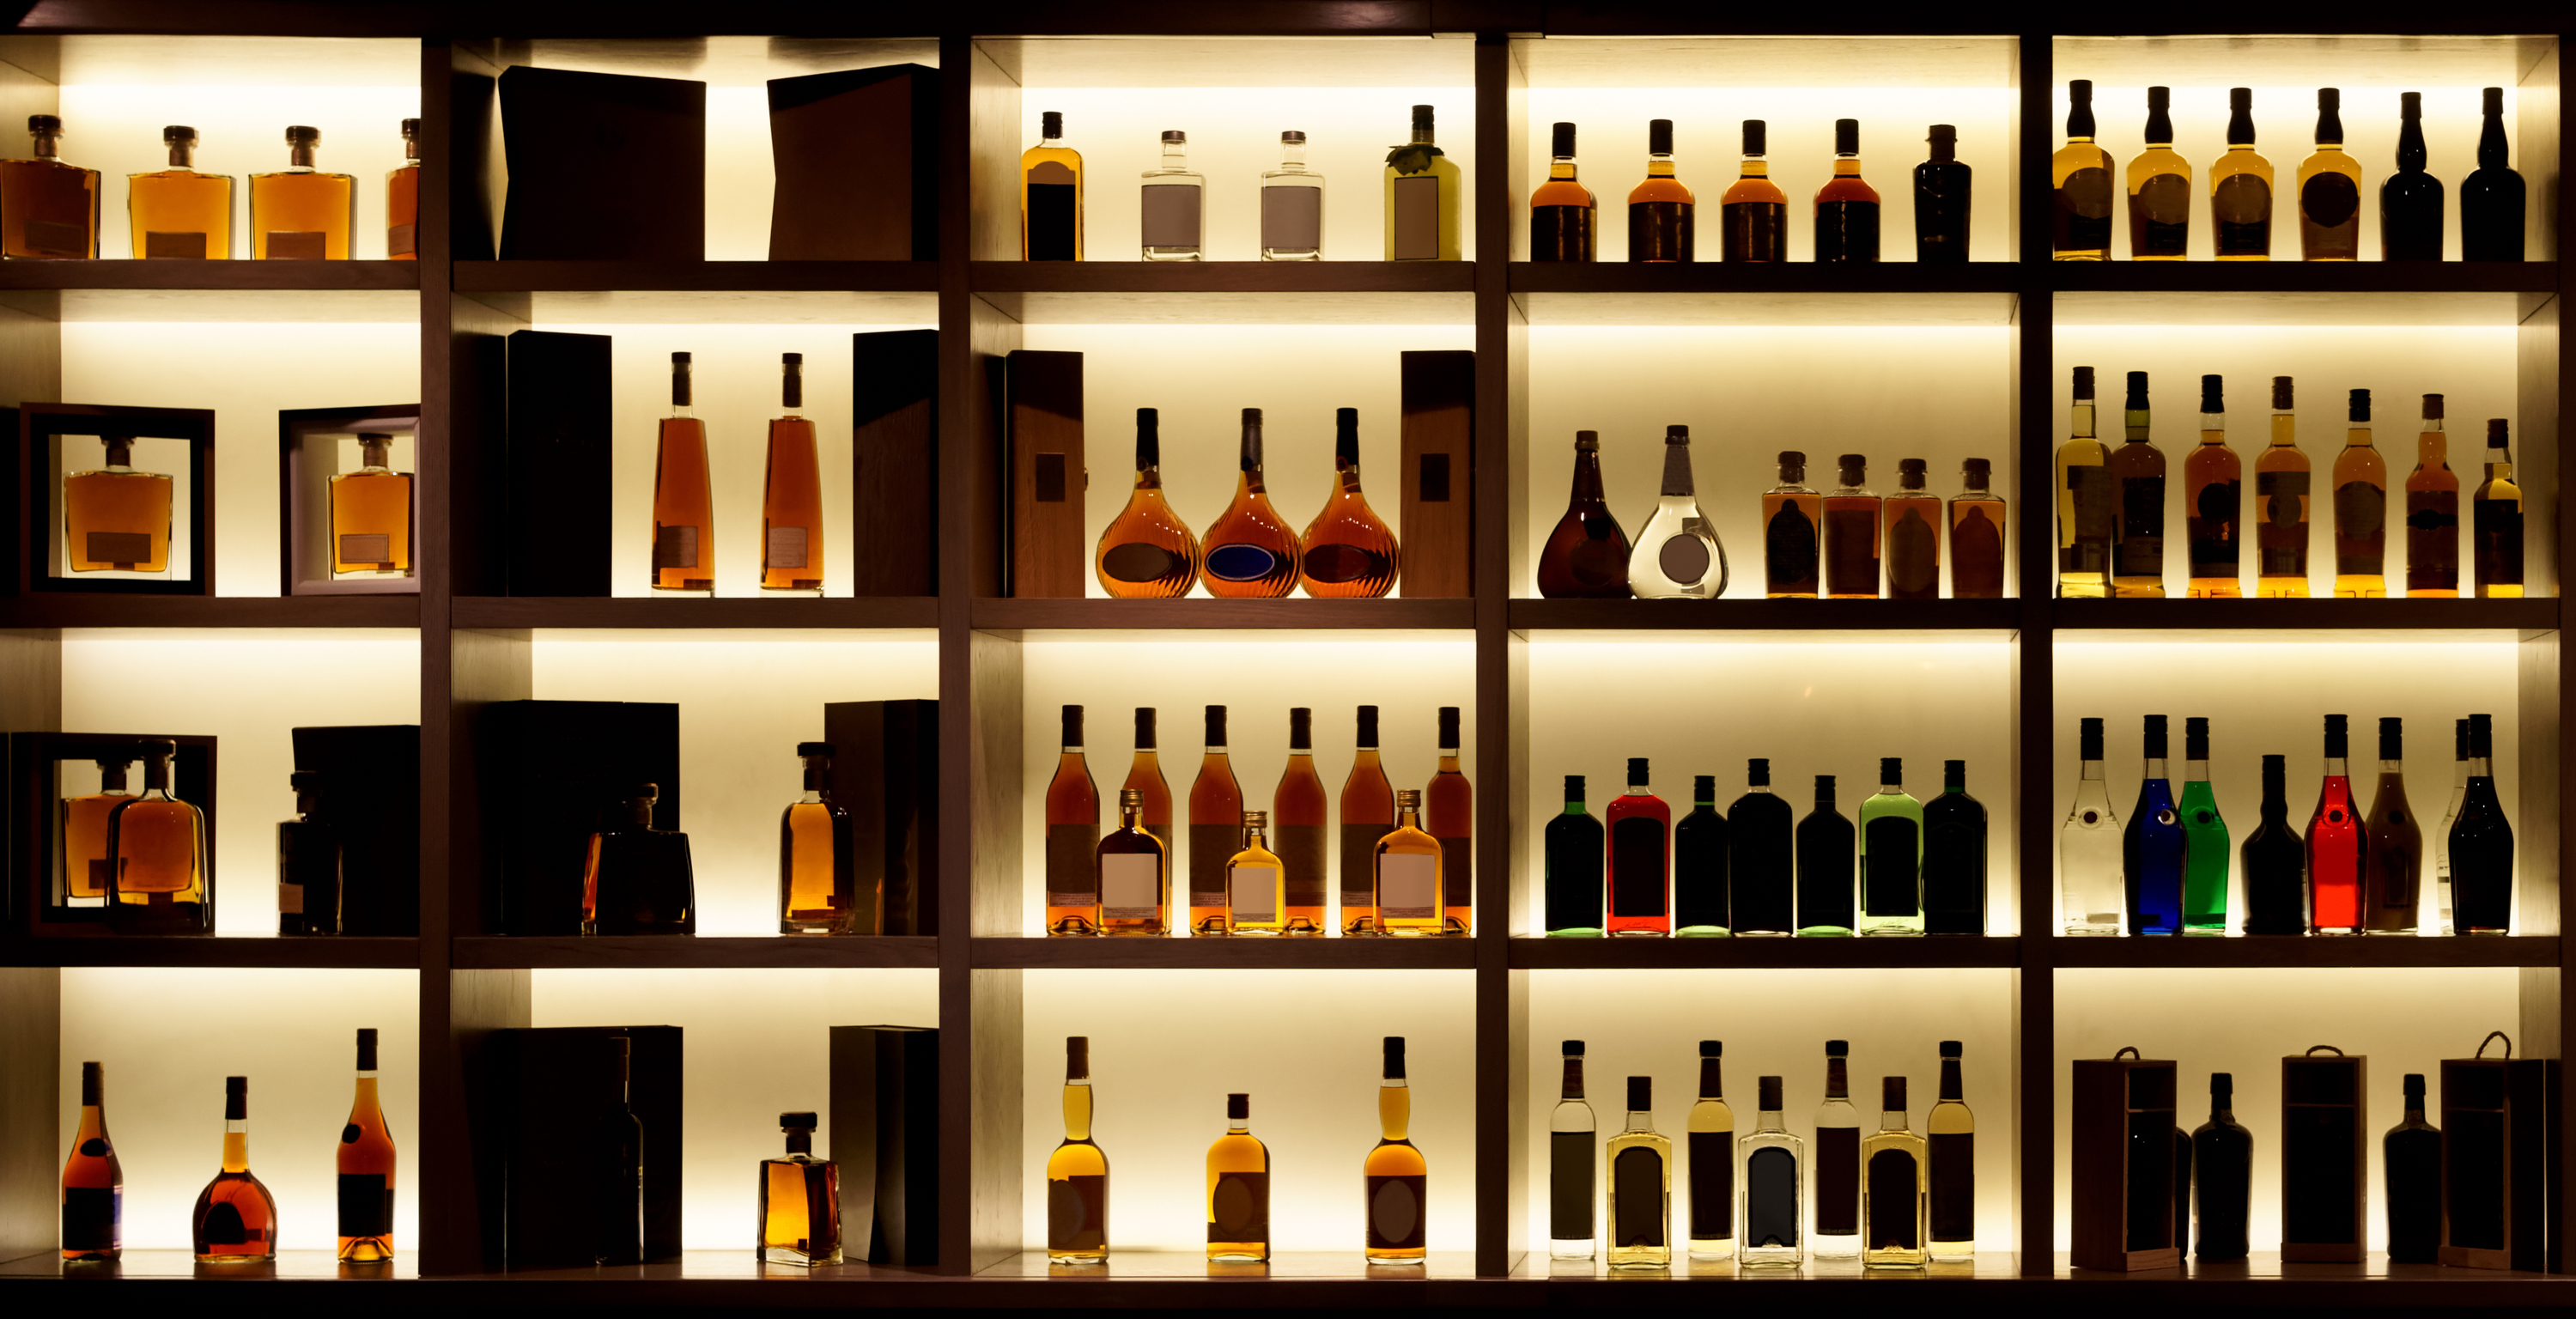 Whisky bar, whisky bottles